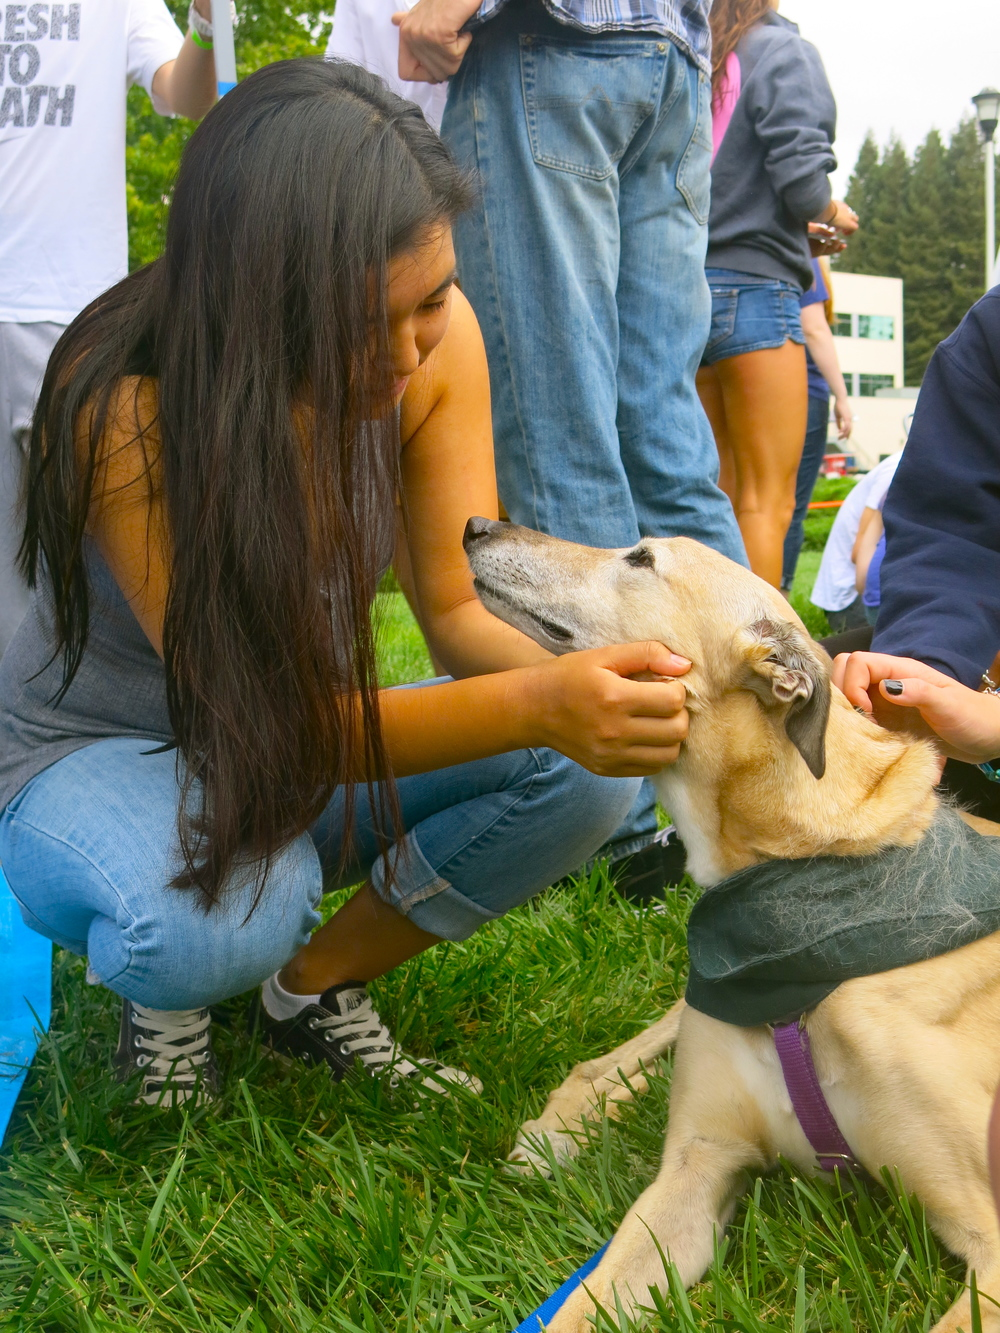 STAR // Maud Busson Sonoma State University hosted stress relief dogs Saturday with the hopes of relieving student stress going into midterms. The furry four- legged friends were welcomed onto the campus with smiles and laughter.